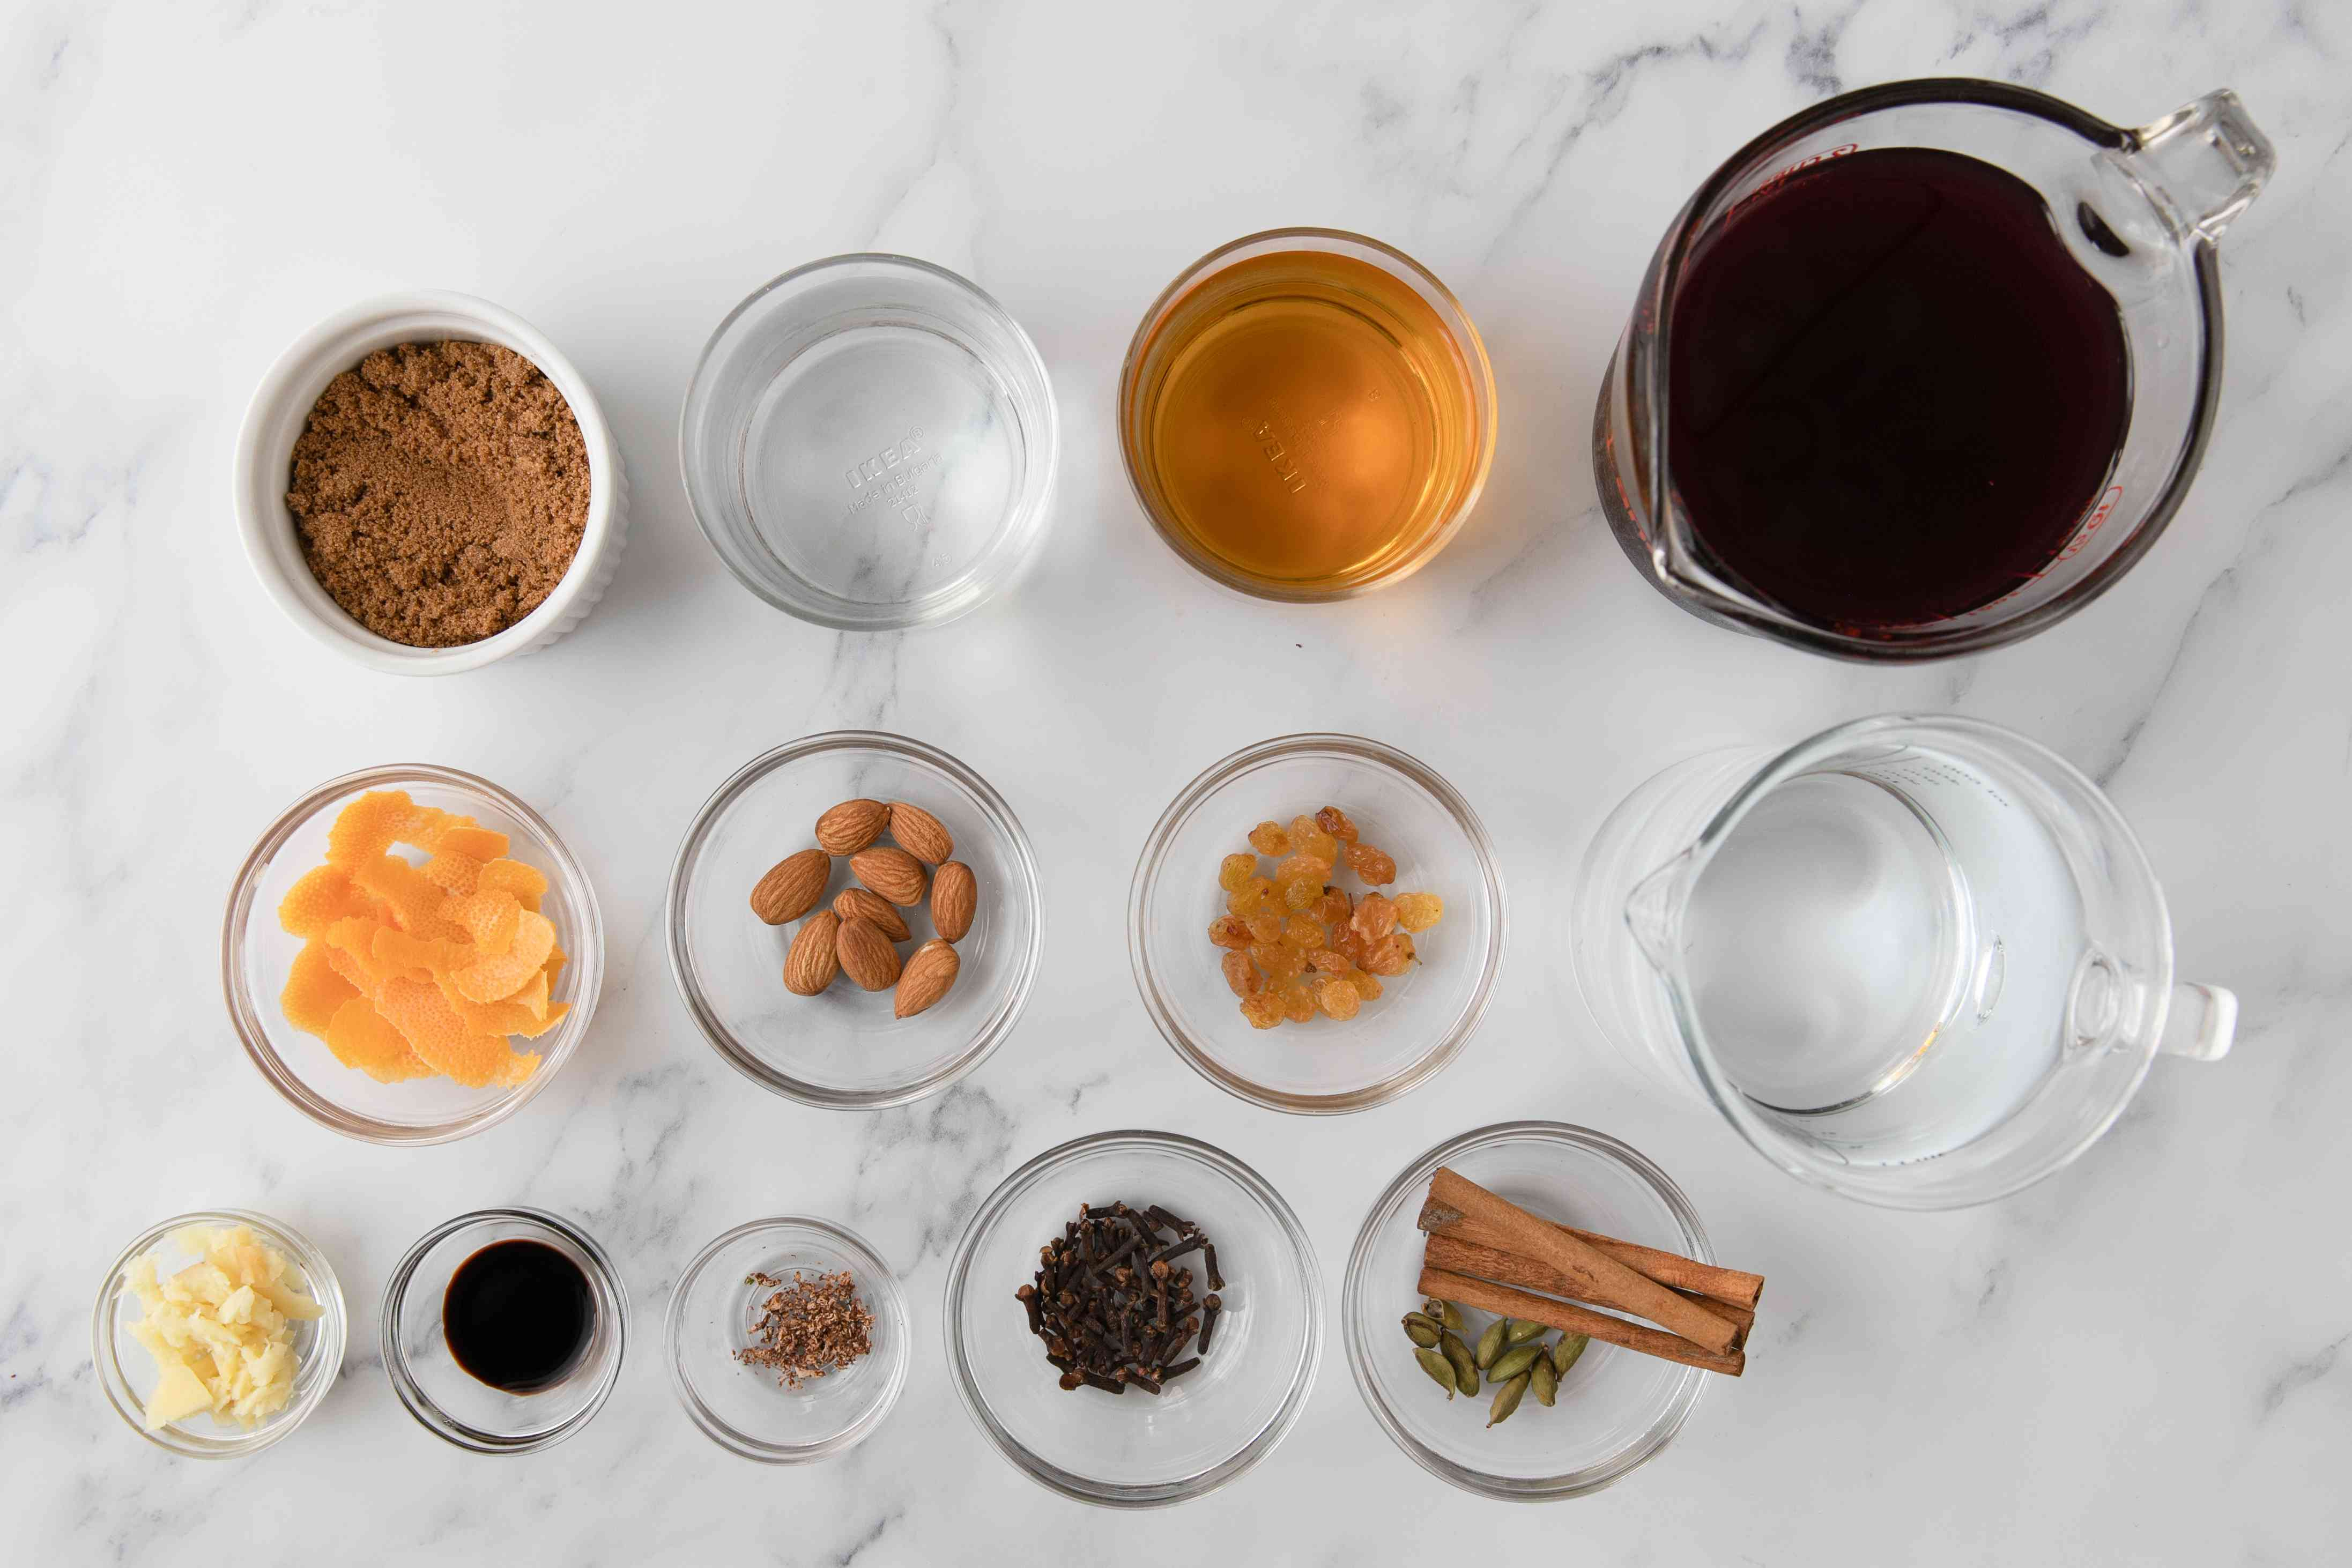 Gather the ingredients for glogg